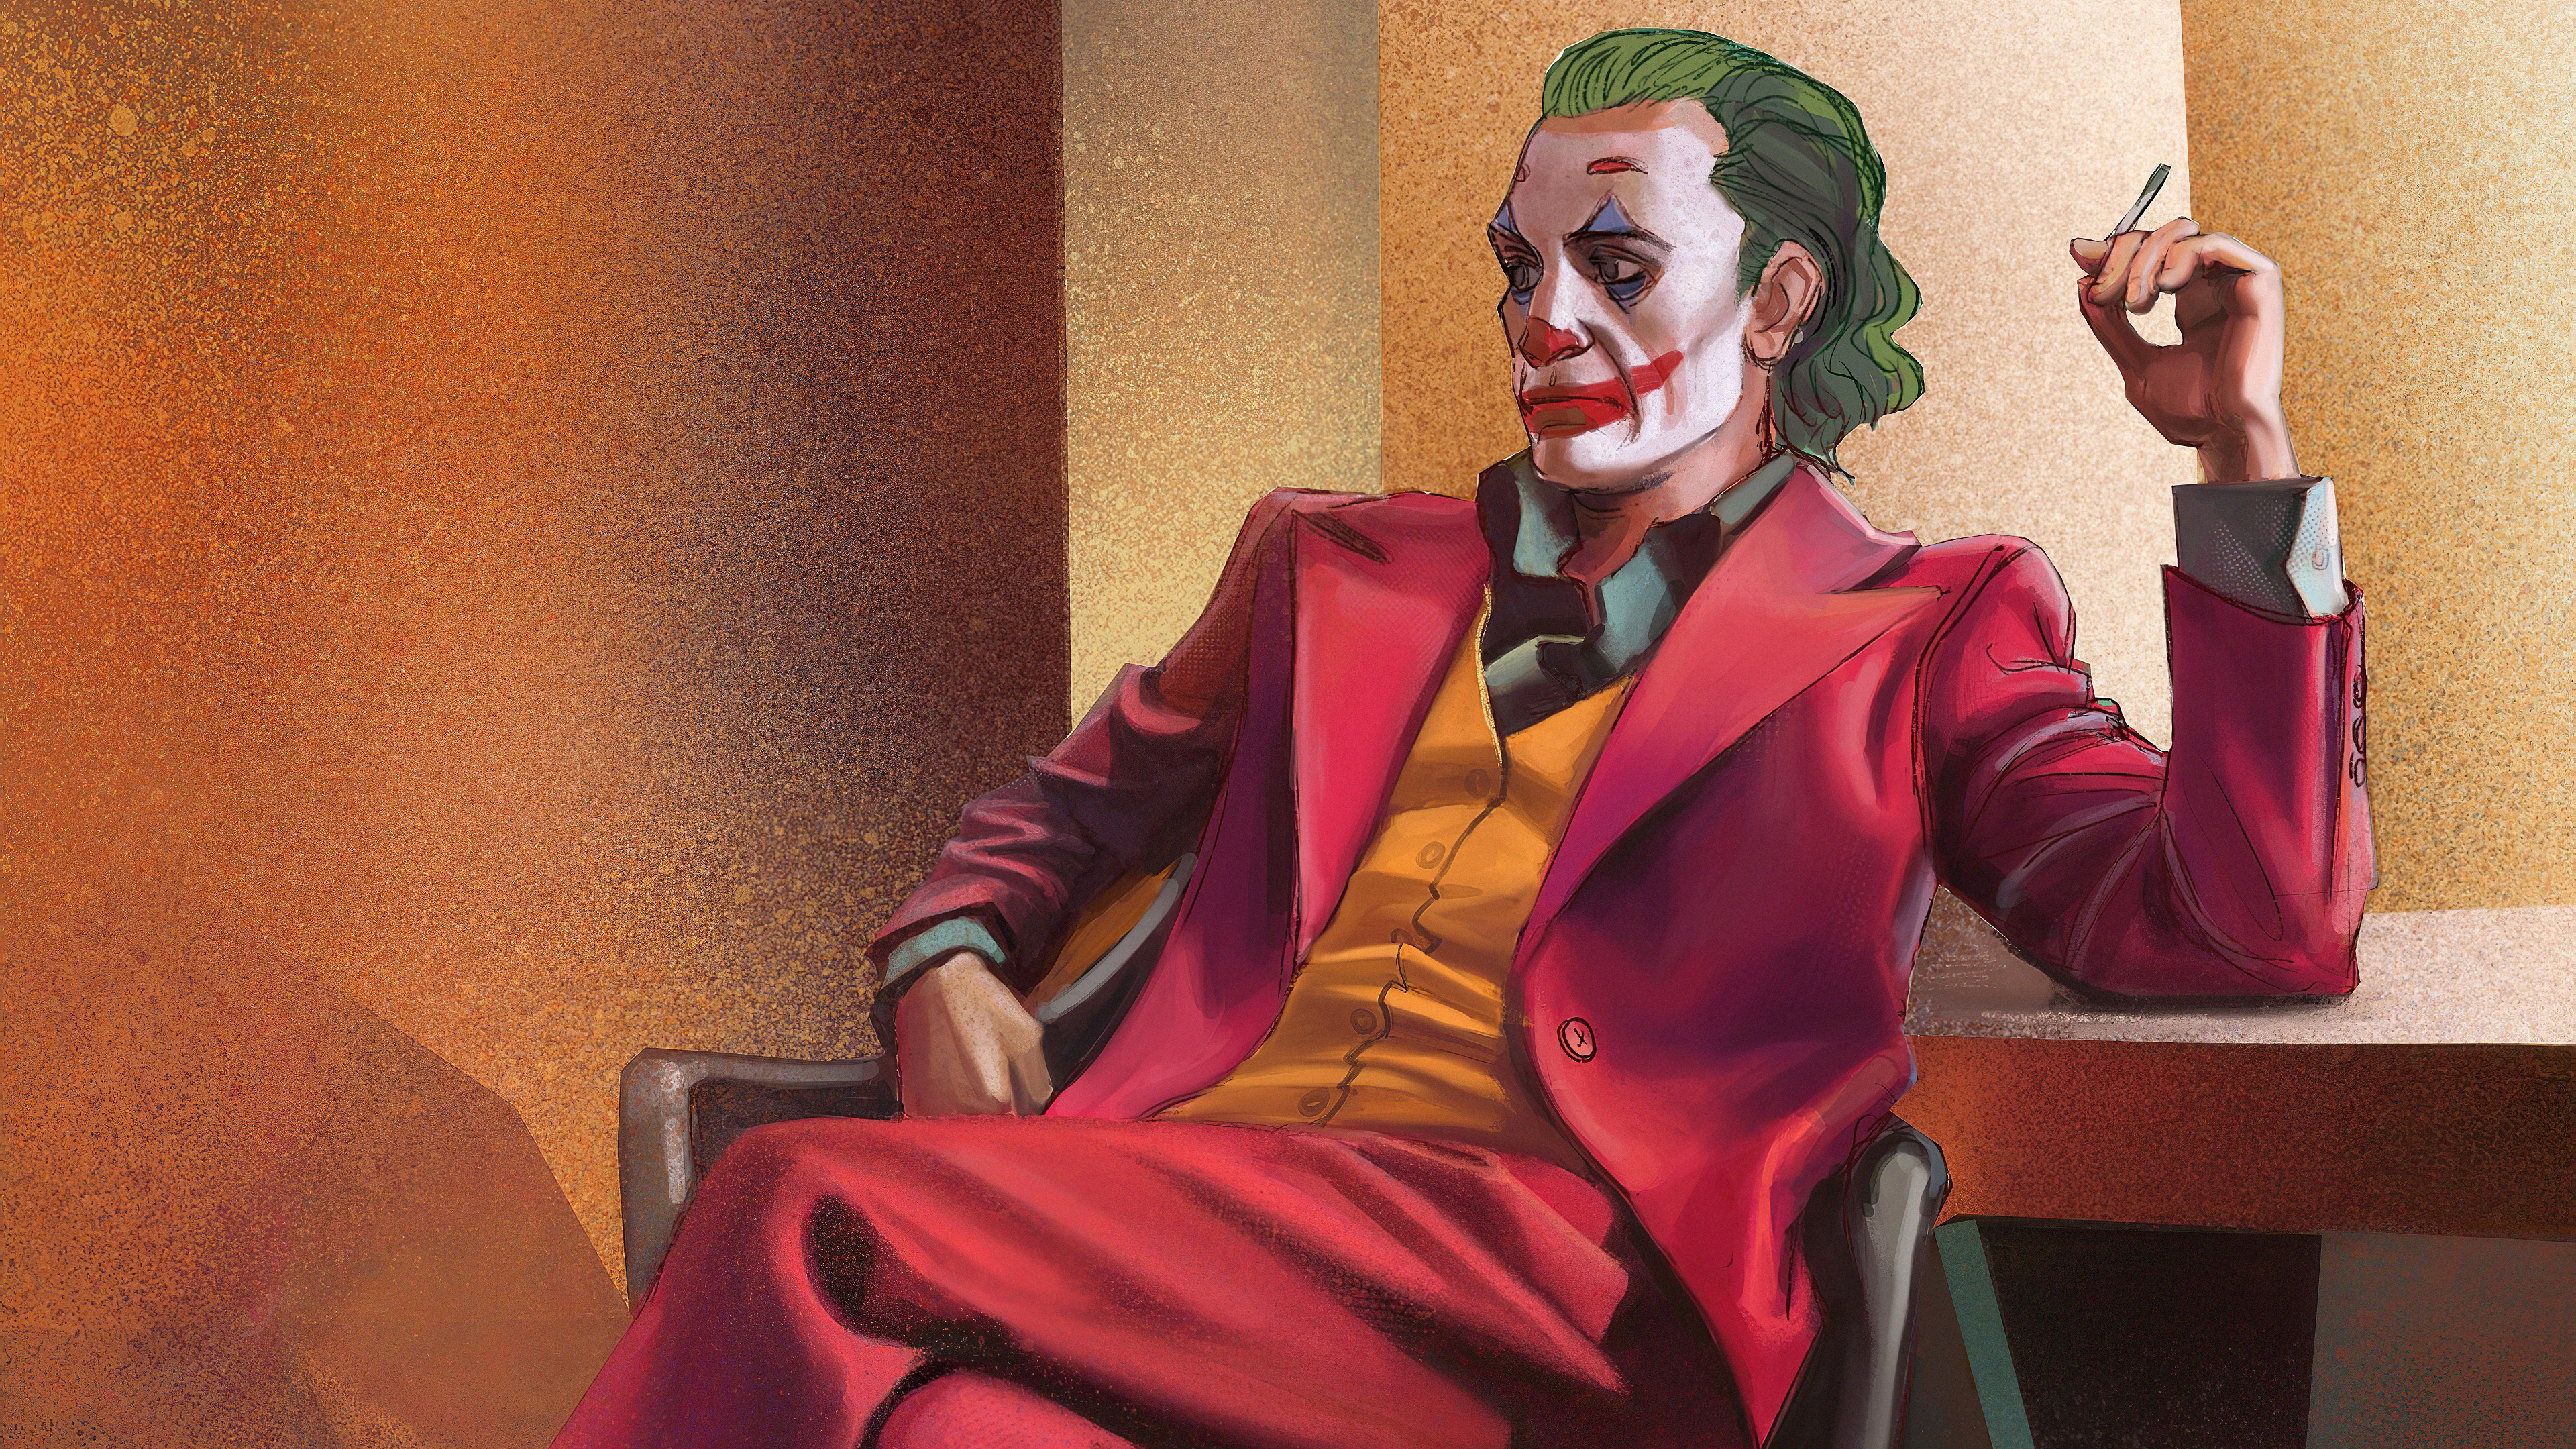 Wallpaper 4k Joker Artwork 4k Wallpaper Joker Joker Art Wallpaper Hd 4k Joker Hd Wallpaper 4k Joker Phone Wallpaper Hd 4k Joker Wallpaper 4k Hd